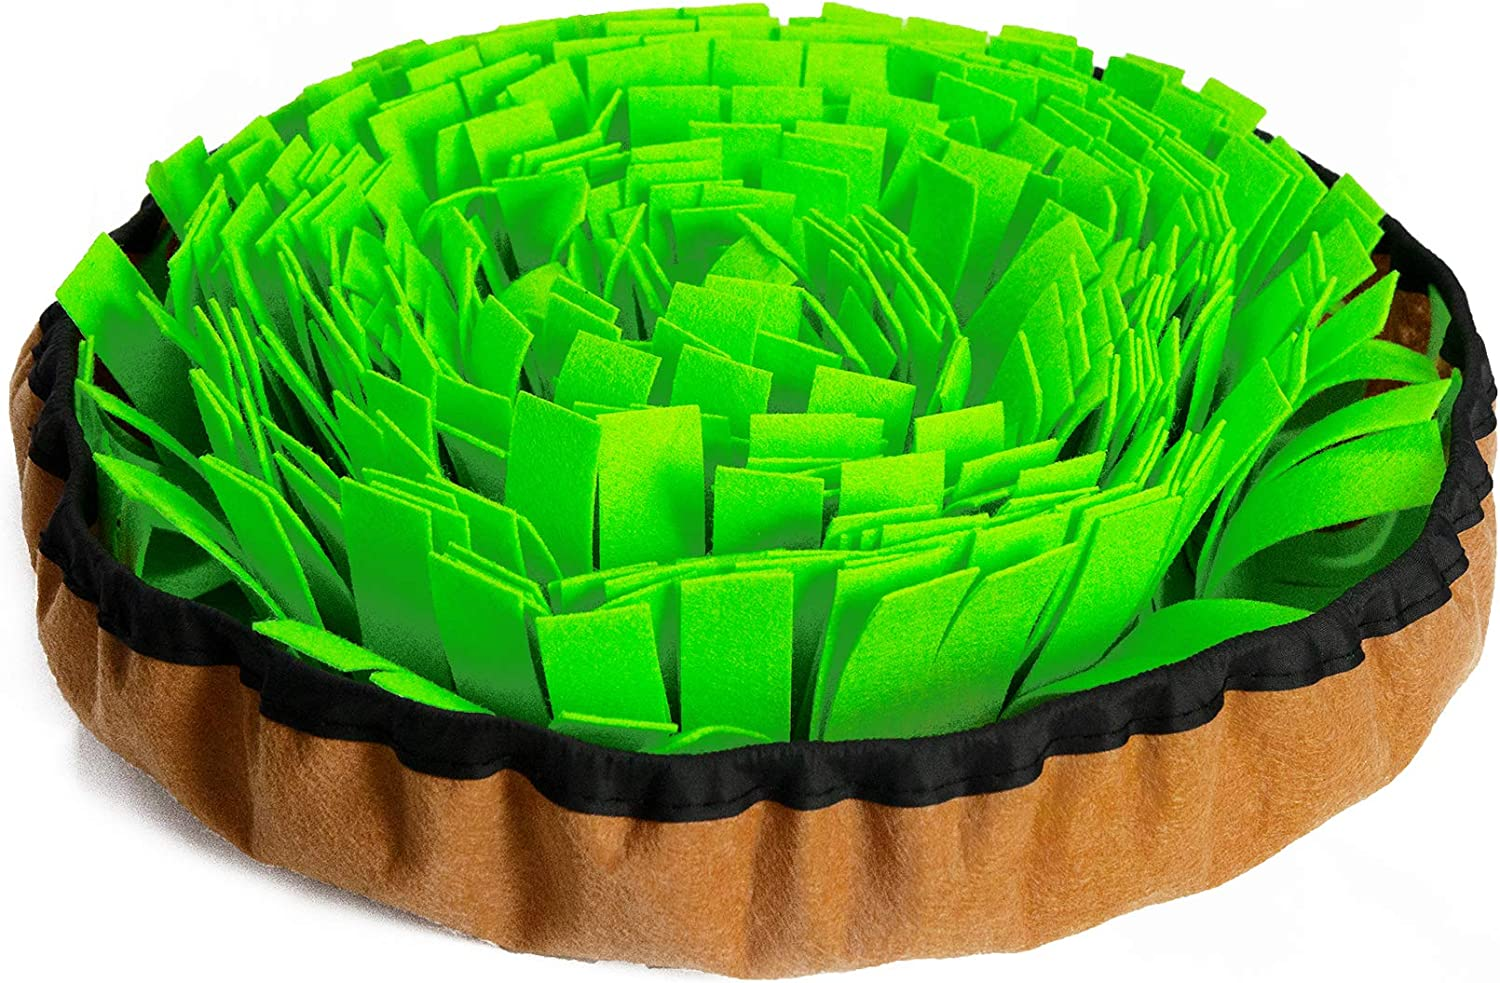 ISENVO Upgraded Snuffle Mat for Dogs Interactive Feed Game Stress Relief Encourages Dogs Hunting Natural Foraging Skills and Training Smell Toys, Slow Feeder Mat Toys Dog Gifts